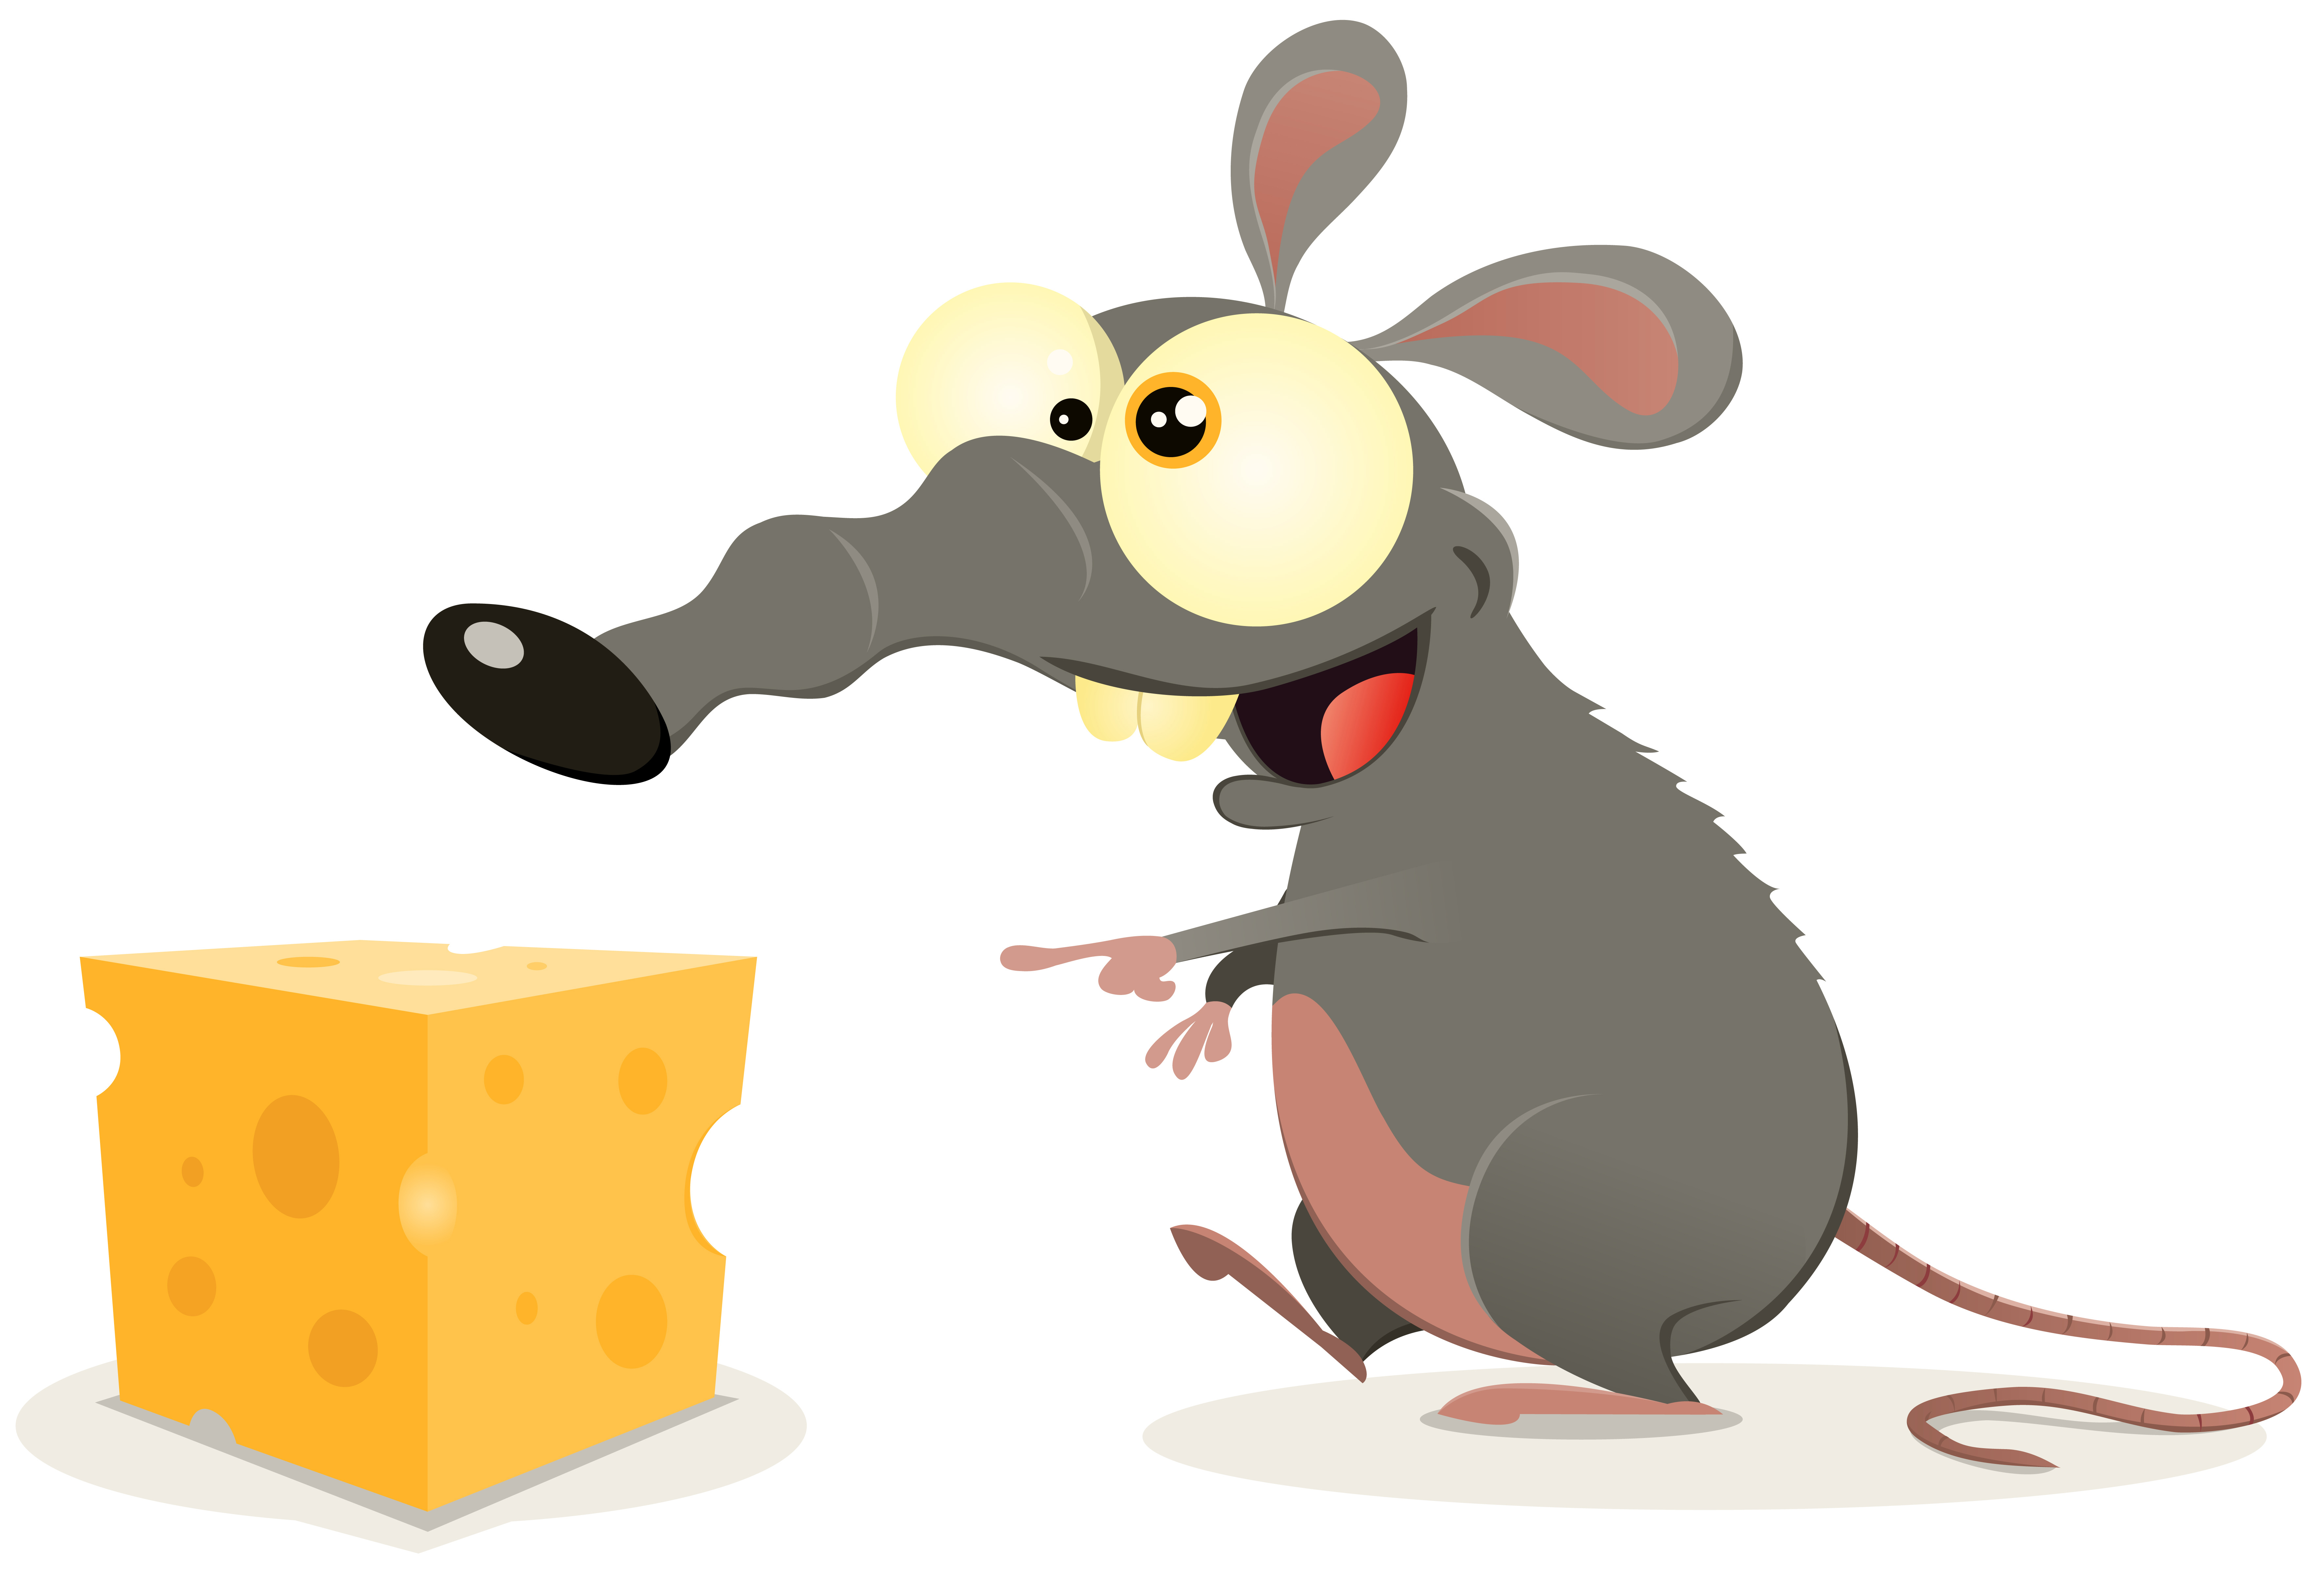 Cartoon Rat And Piece Of Cheese - Download Free Vectors ...